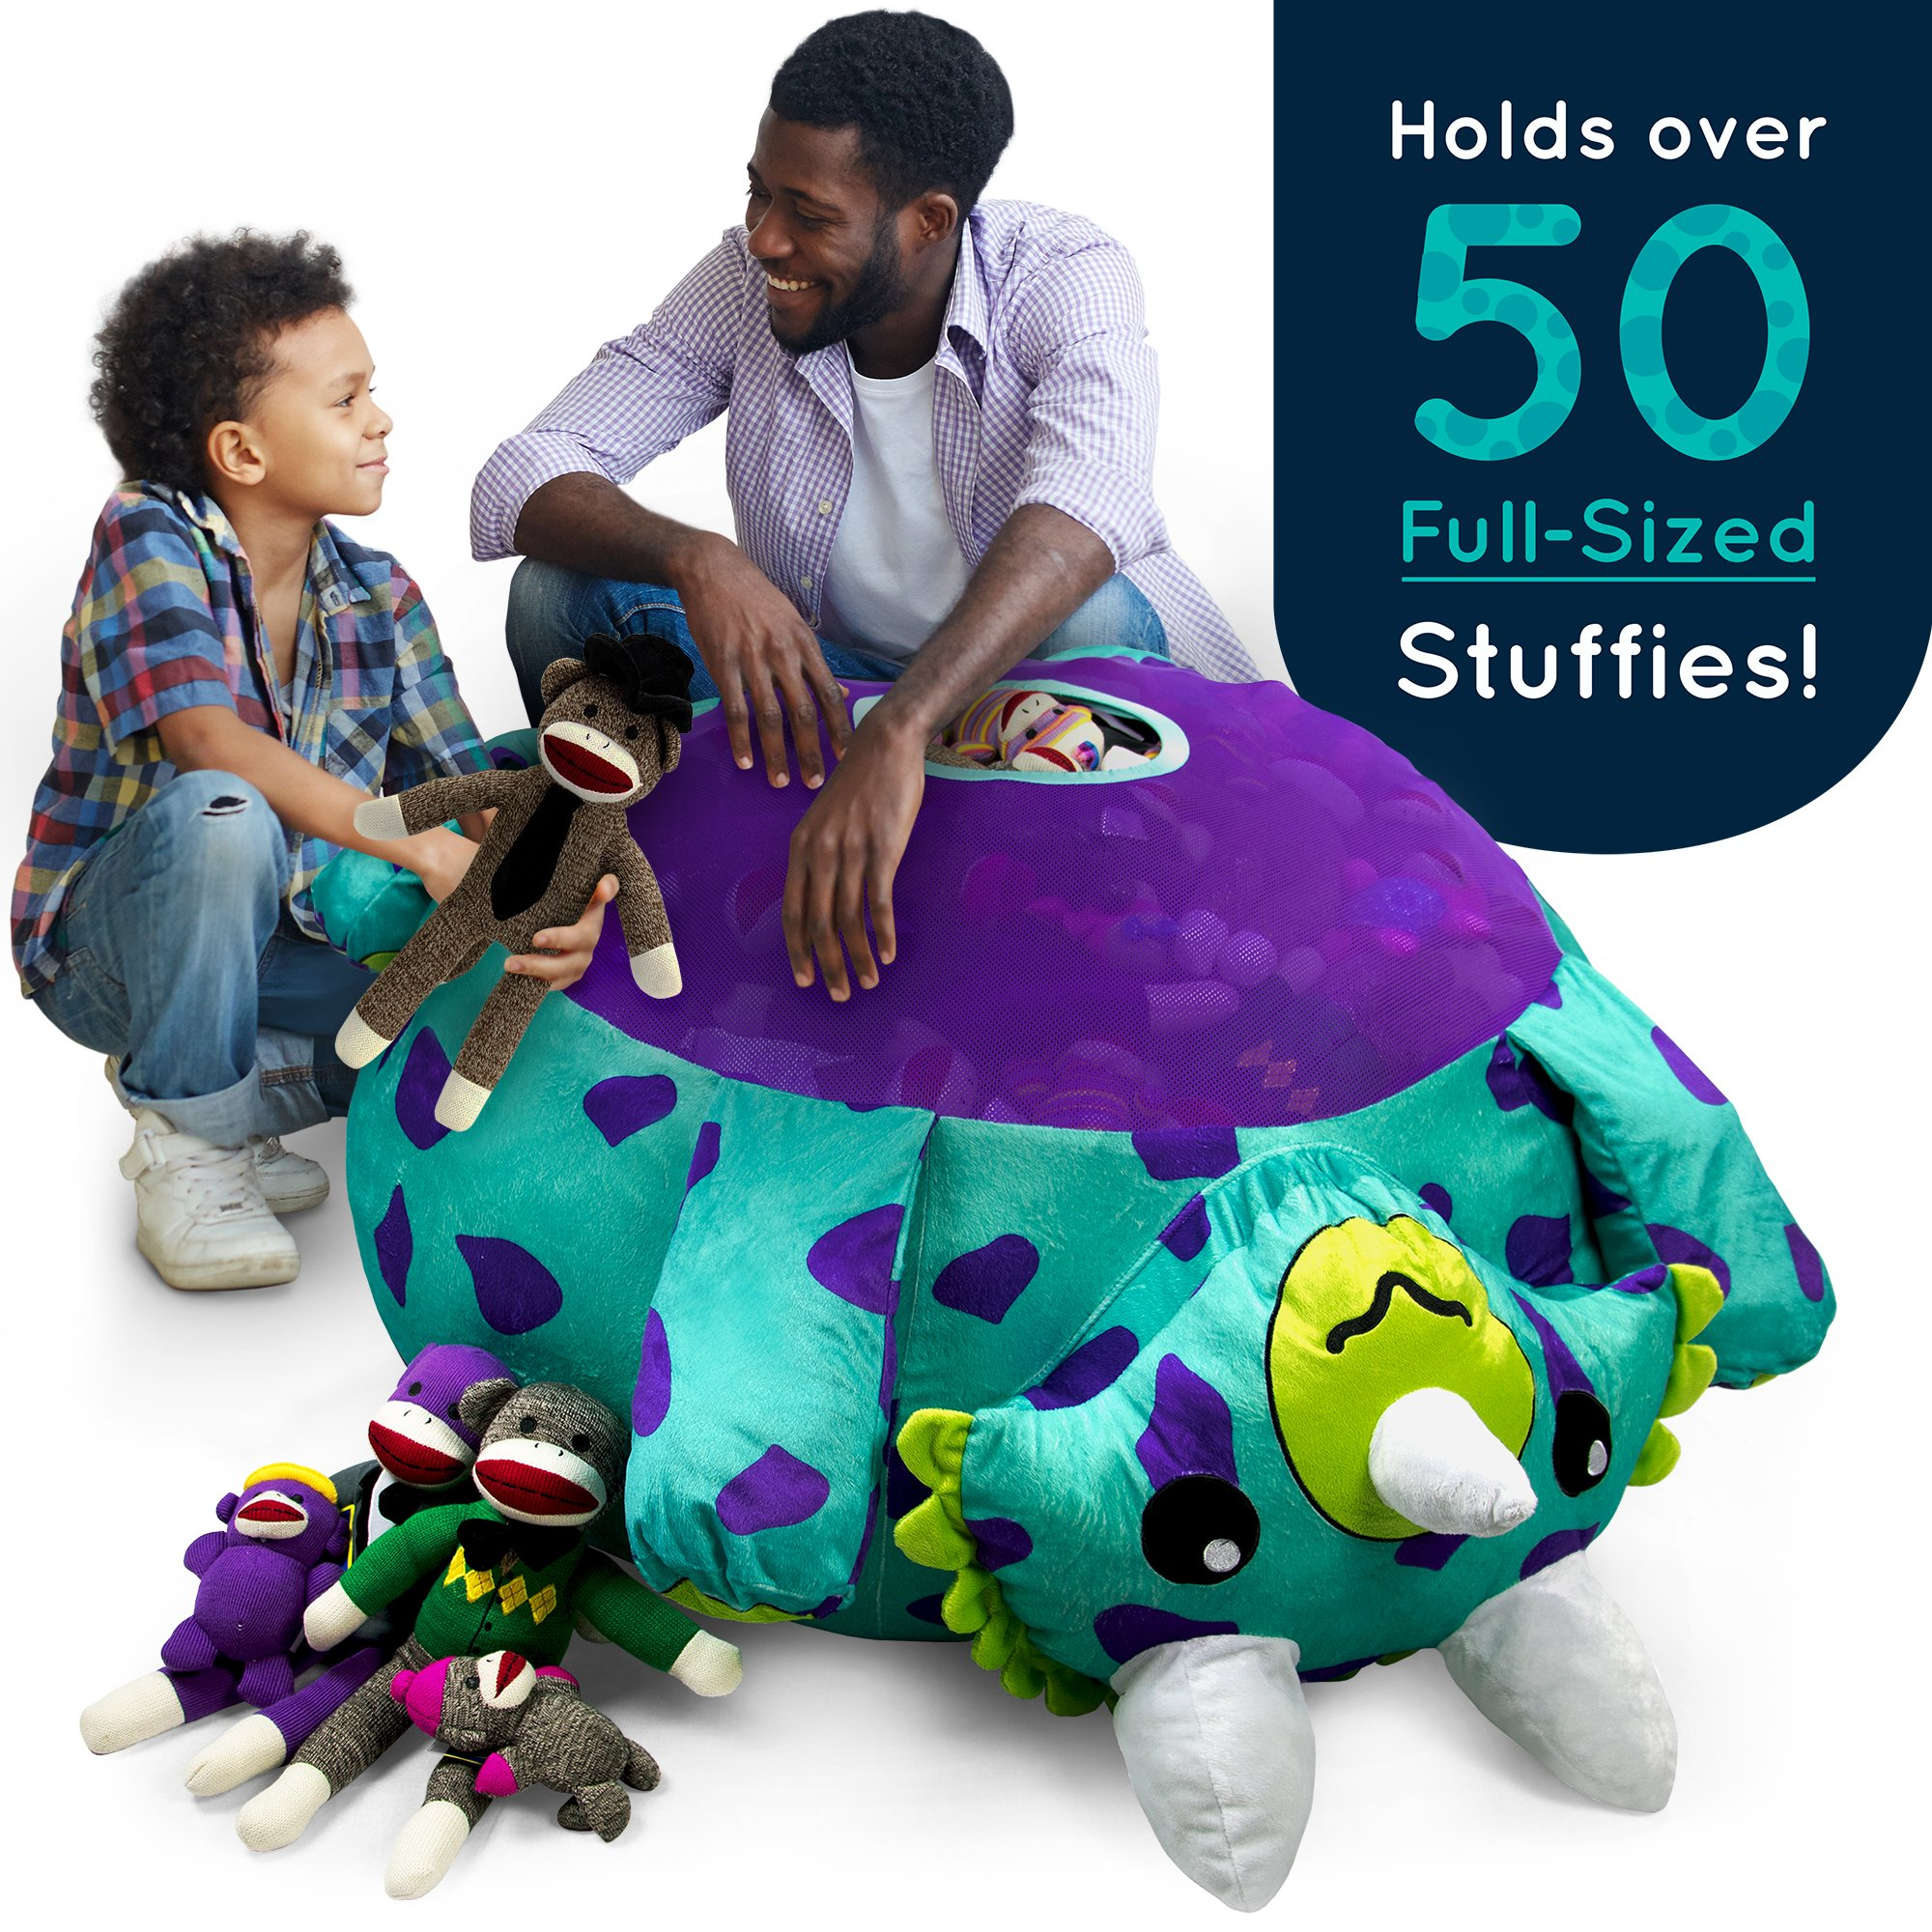 Stuffums Bean Bag Chair and Stuffed Animal Storage - 3-foot Turquoise Triceratops Dinosaur Pouf with Breathable Mesh Bottom, Holds Over 50 Plushies! Great for Bedrooms, Playrooms, & Dorms by Stuffums